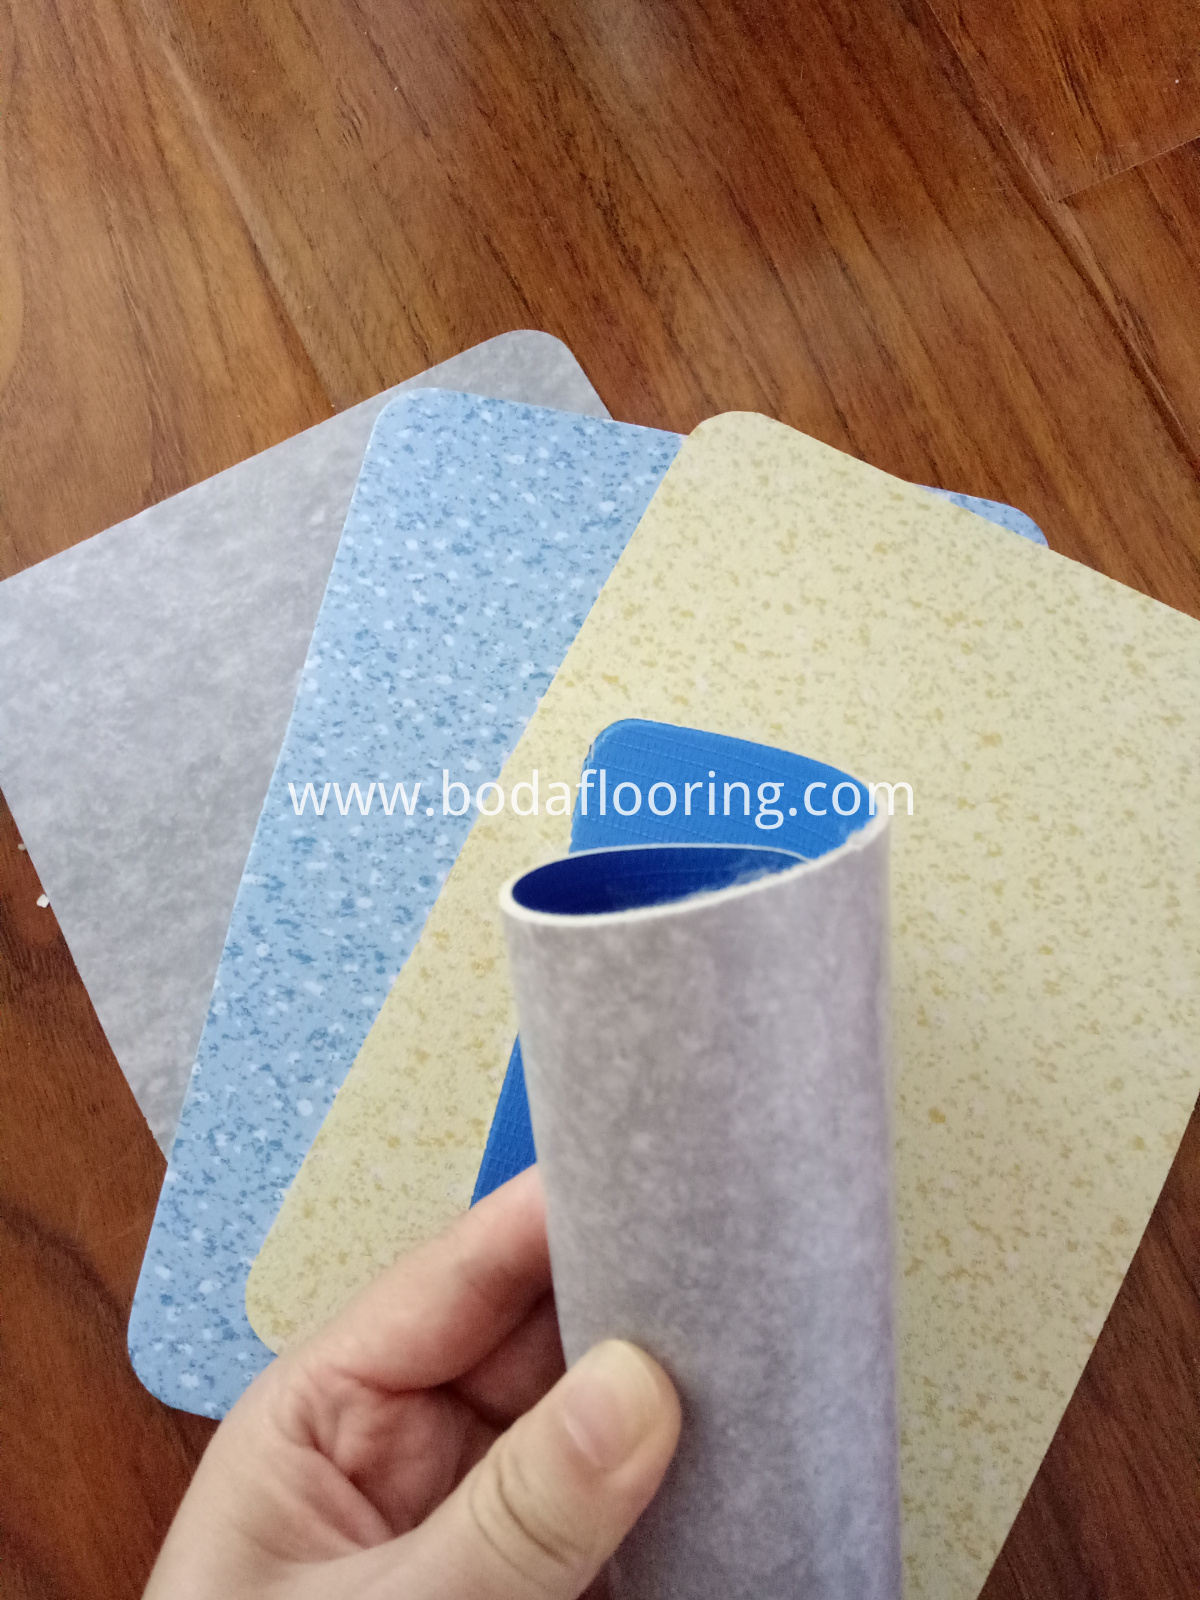 Commerical Pvc Flooring